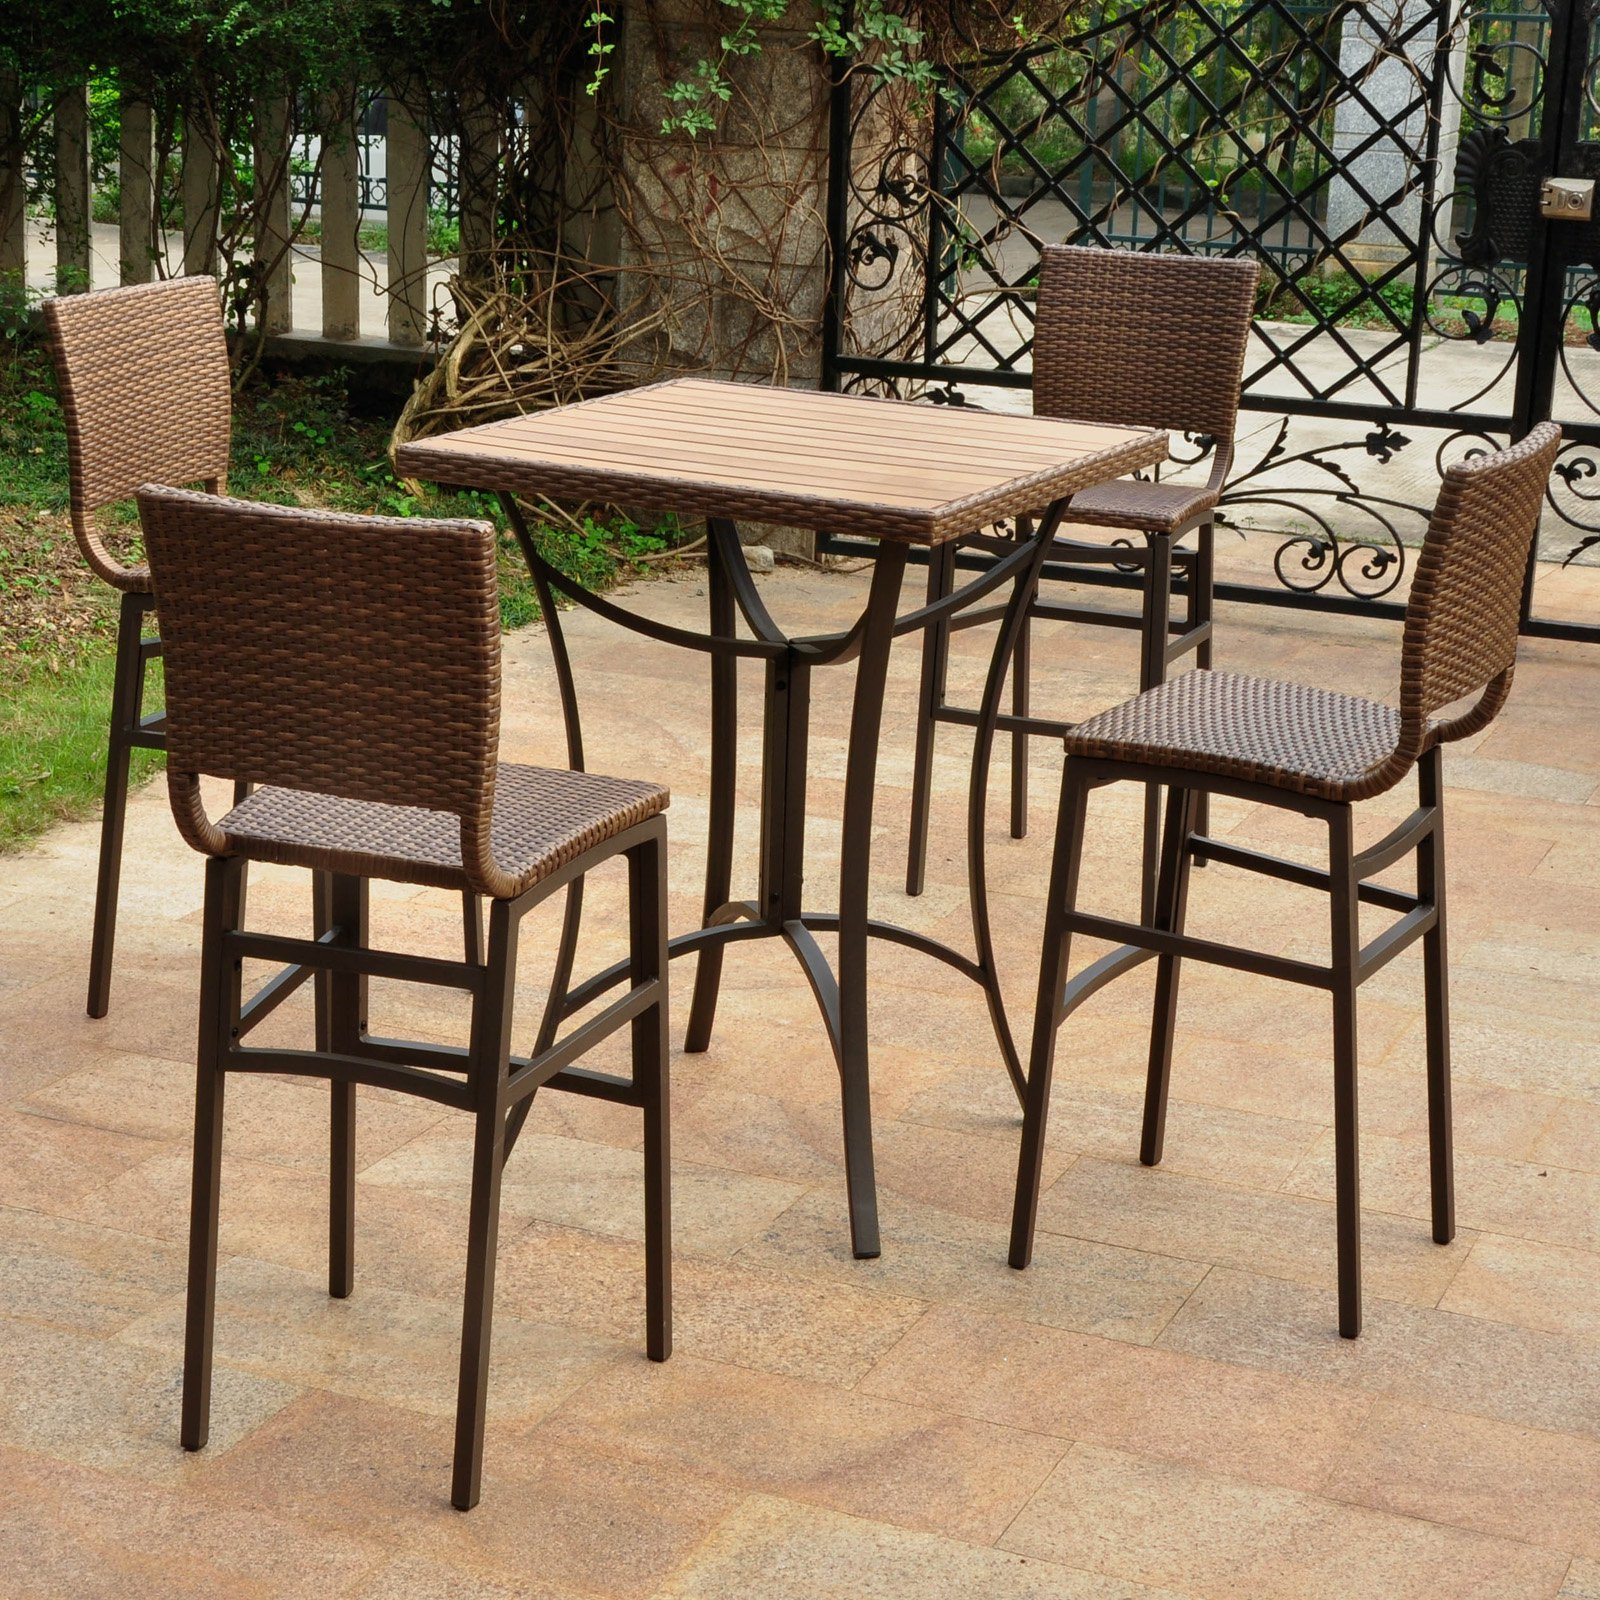 International Caravan Barcelona Resin Wicker 5 pc. Bar-Height Patio Dining Set